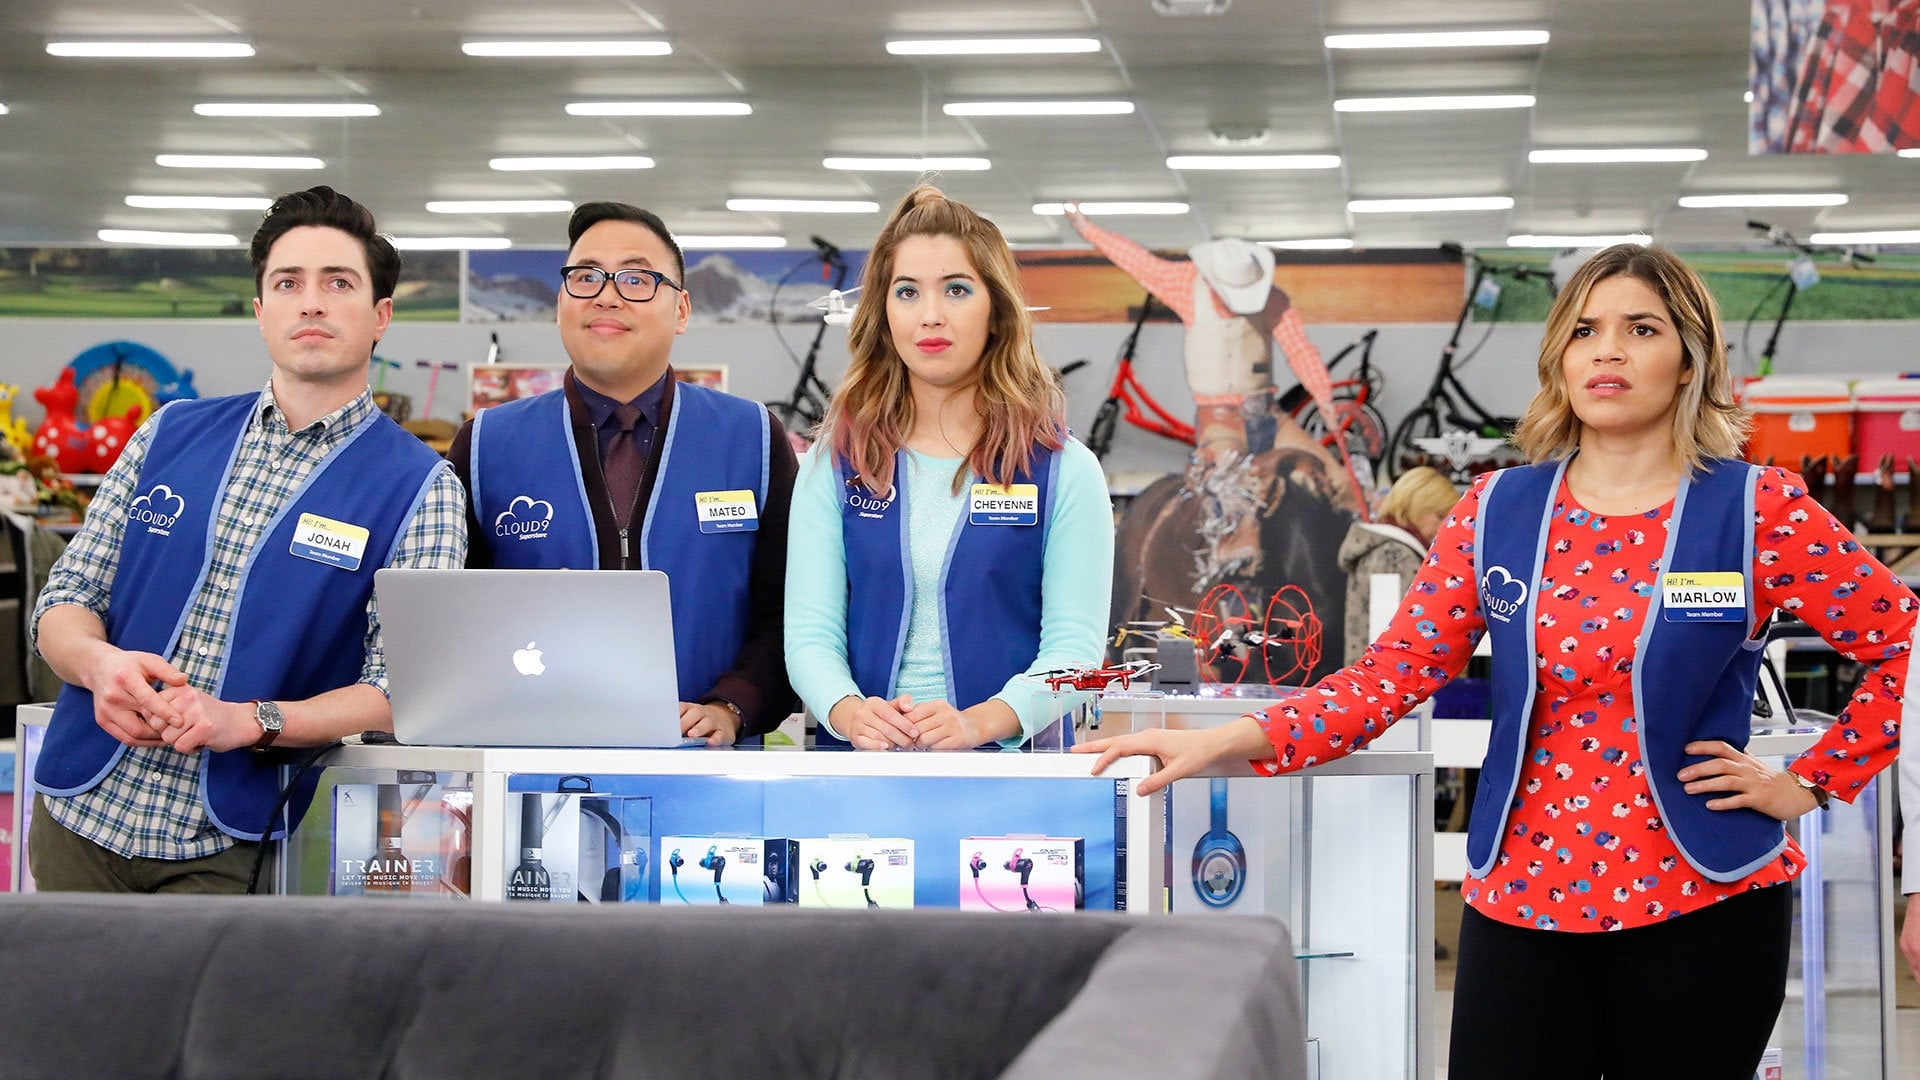 Superstore - Season 2 Episode 18 : Mateo's Last Day